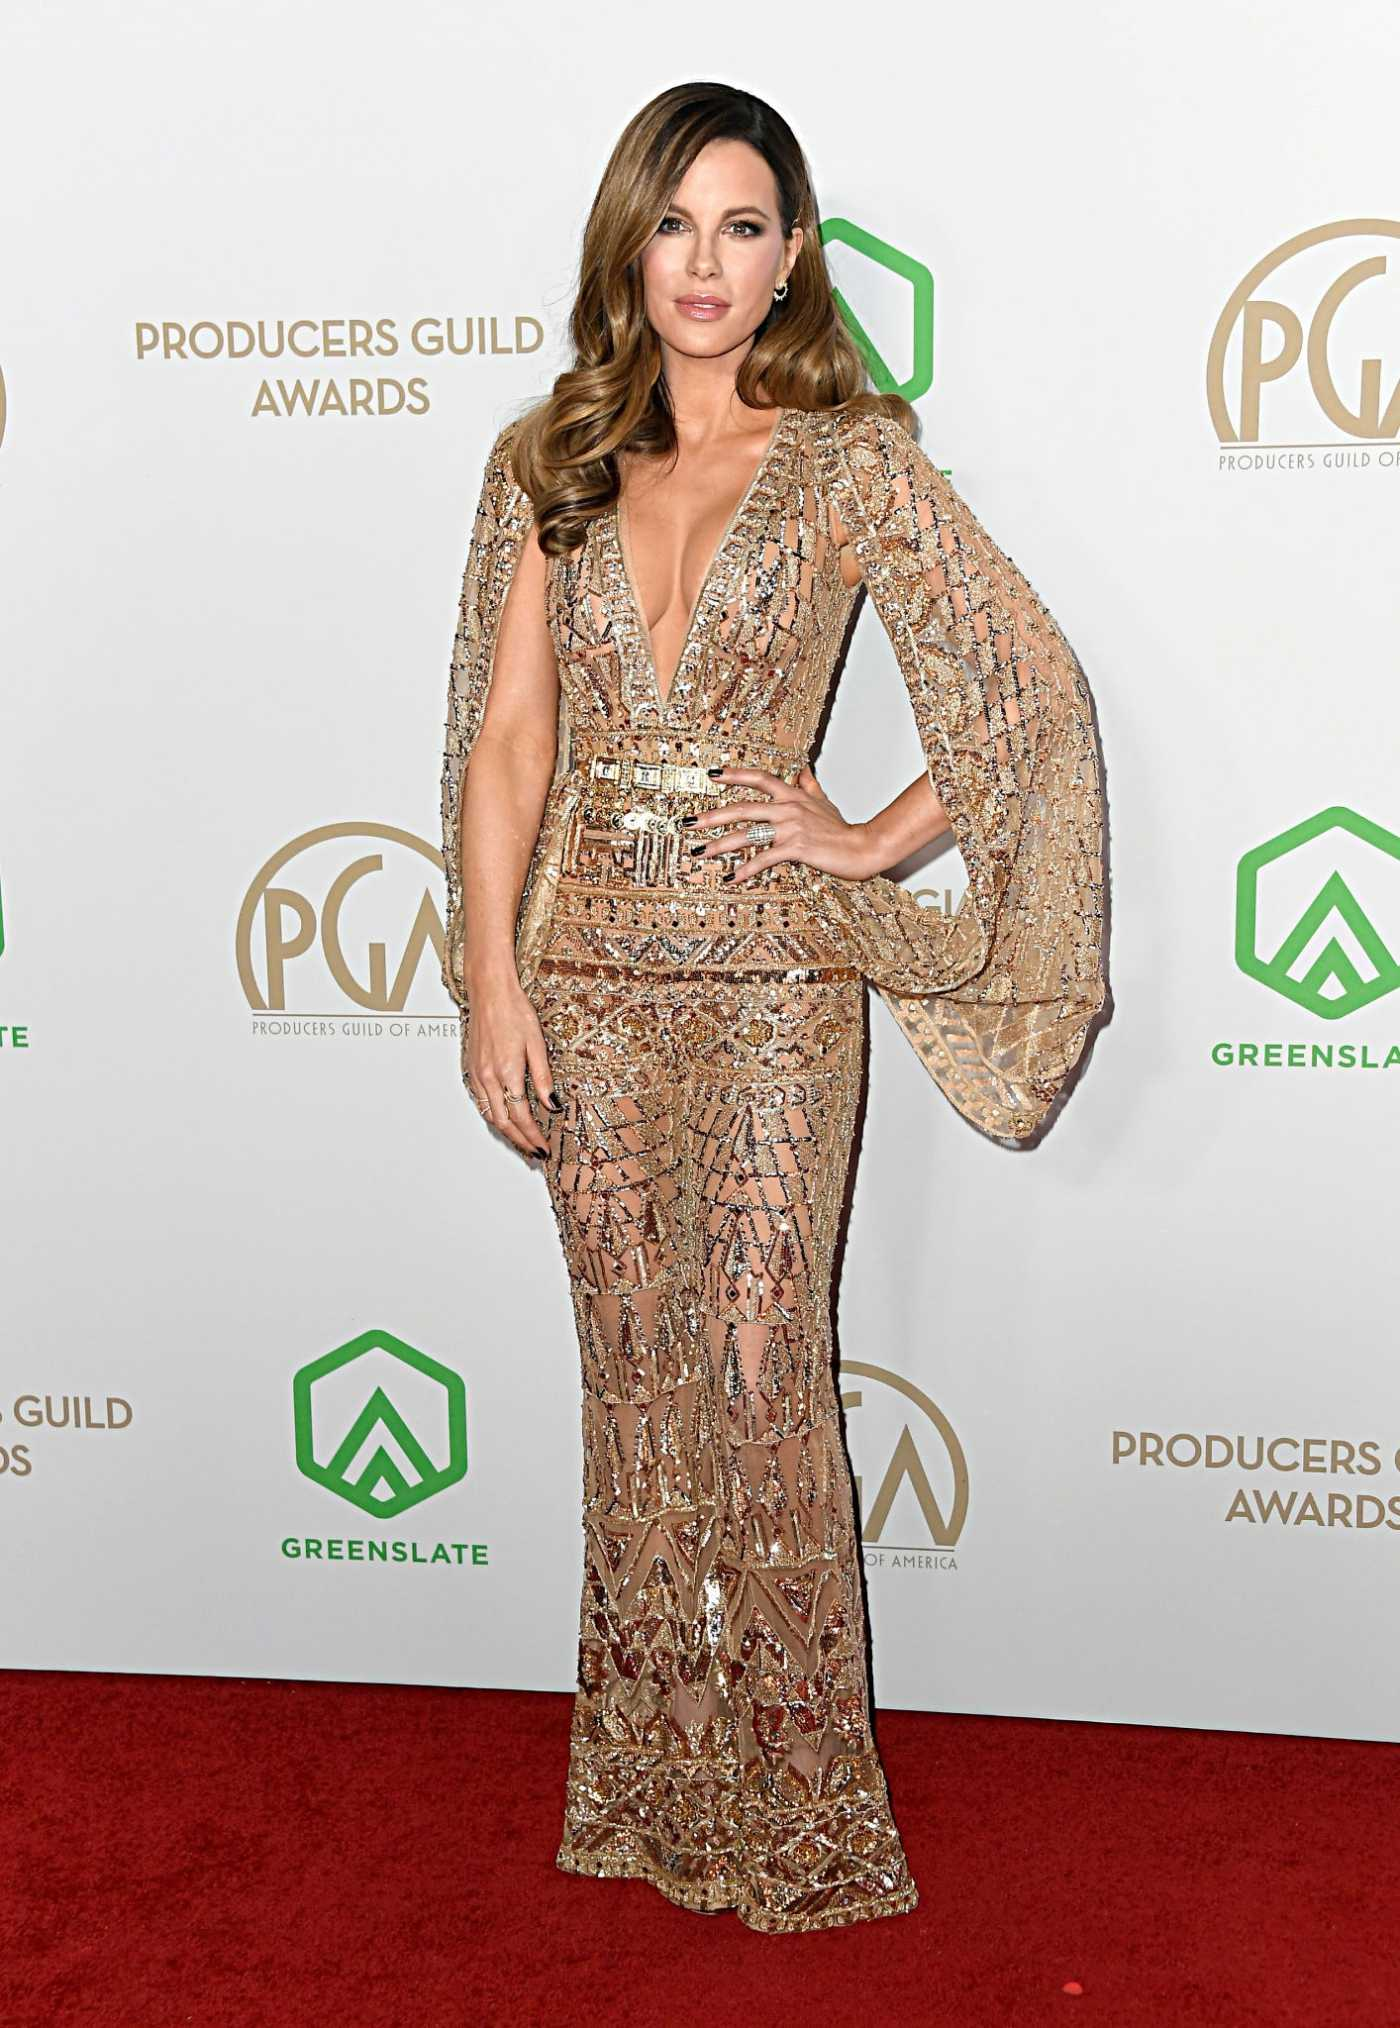 Kate Beckinsale Attends the 31st Annual Producers Guild Awards in Los Angeles 01/18/2020